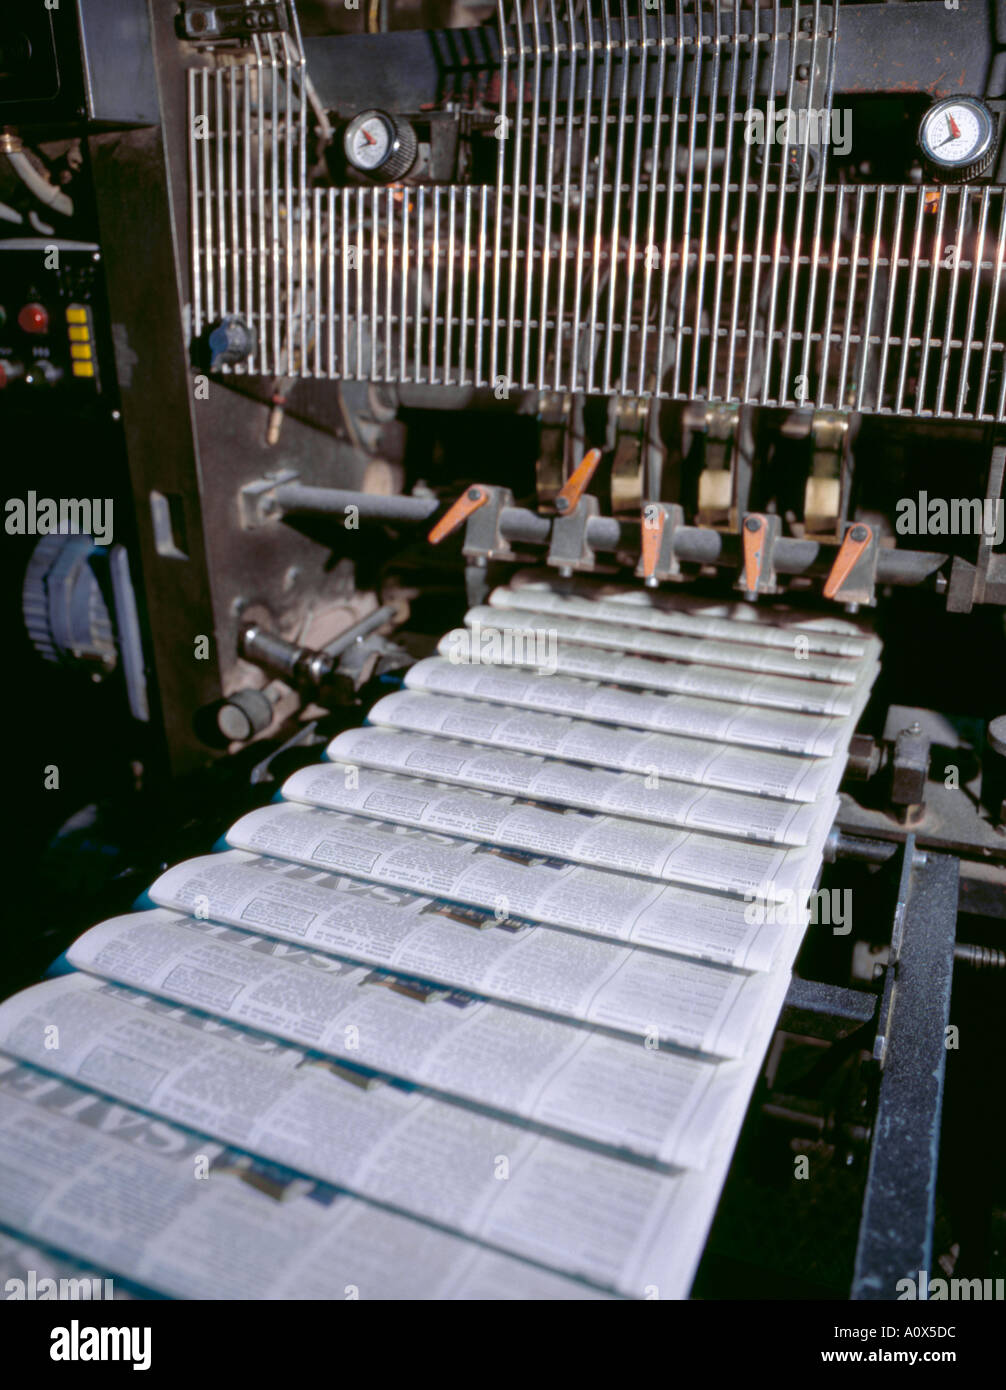 Part of a newspaper printing press, England, UK. - Stock Image